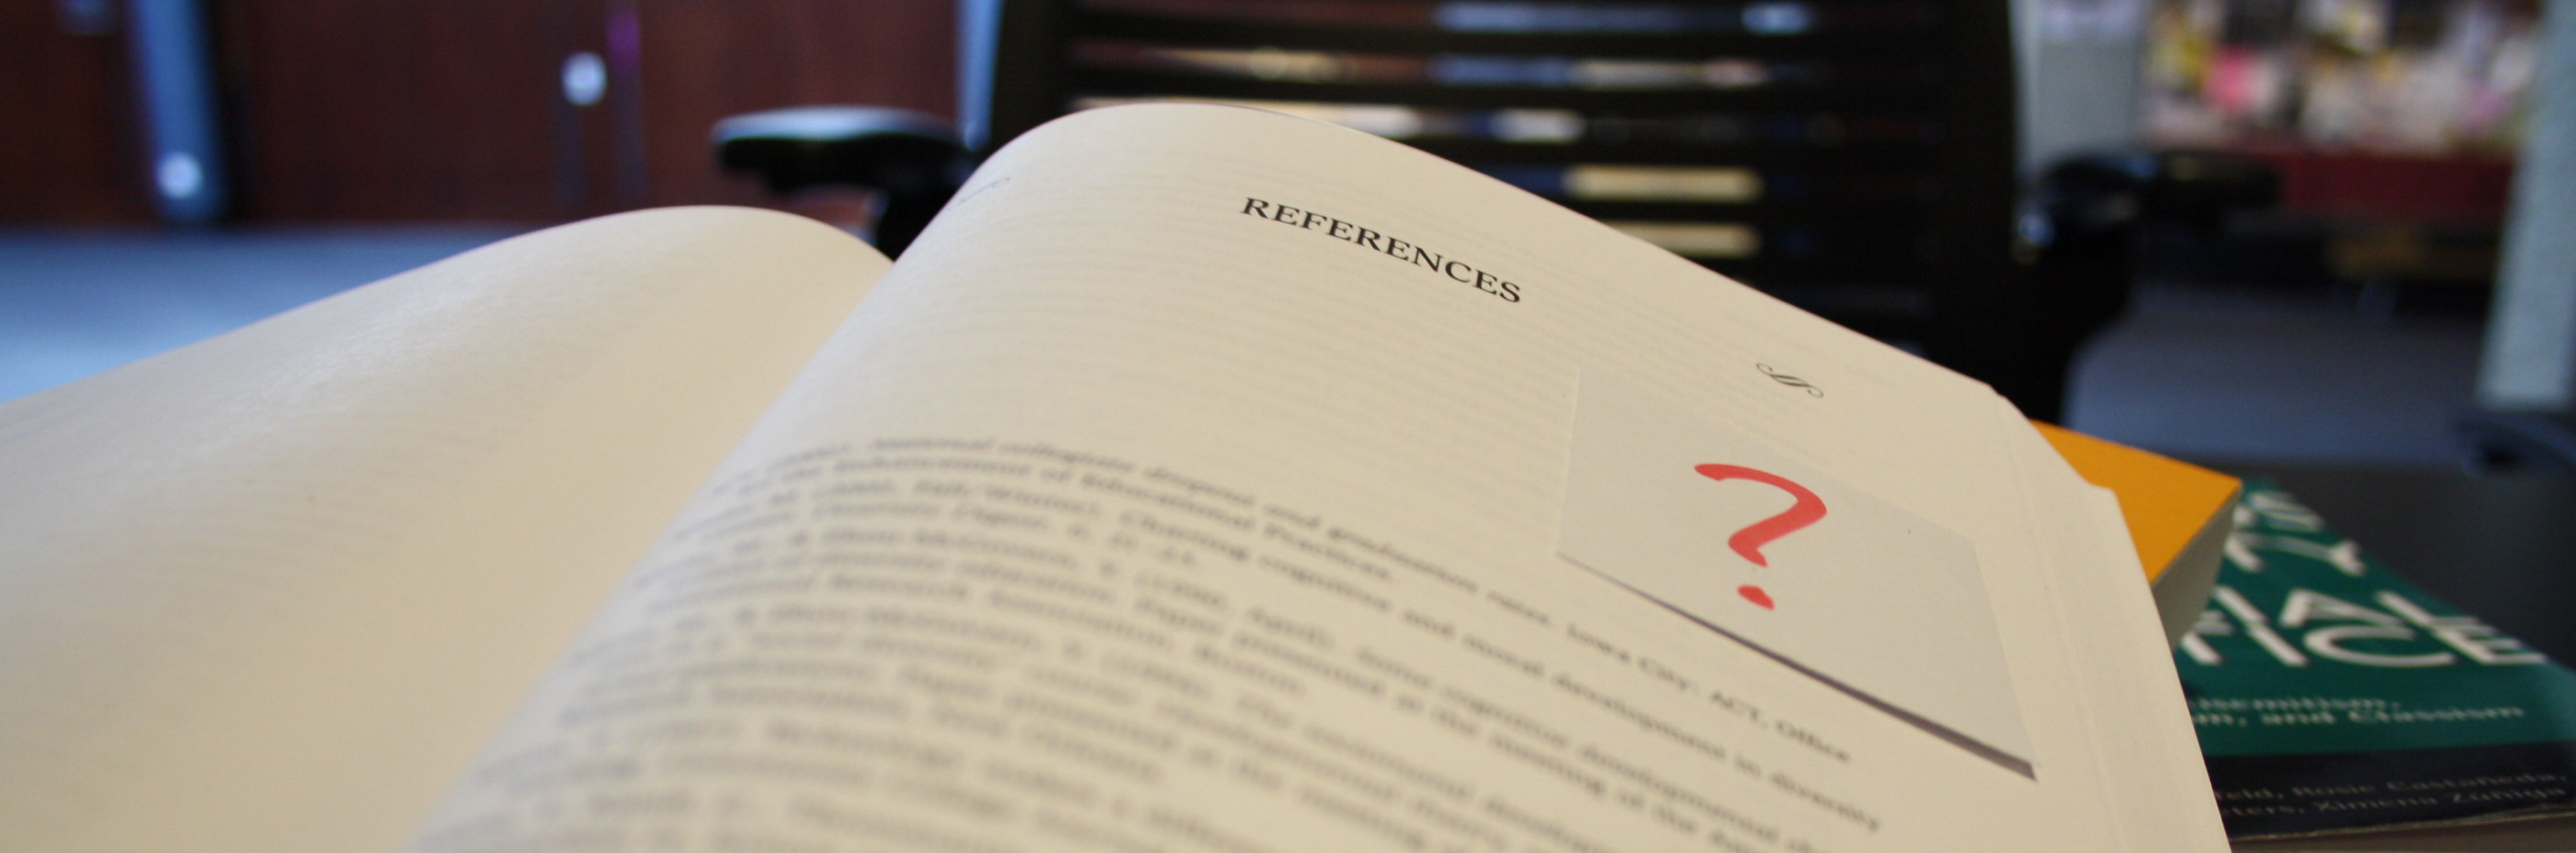 the reference page in a textbook